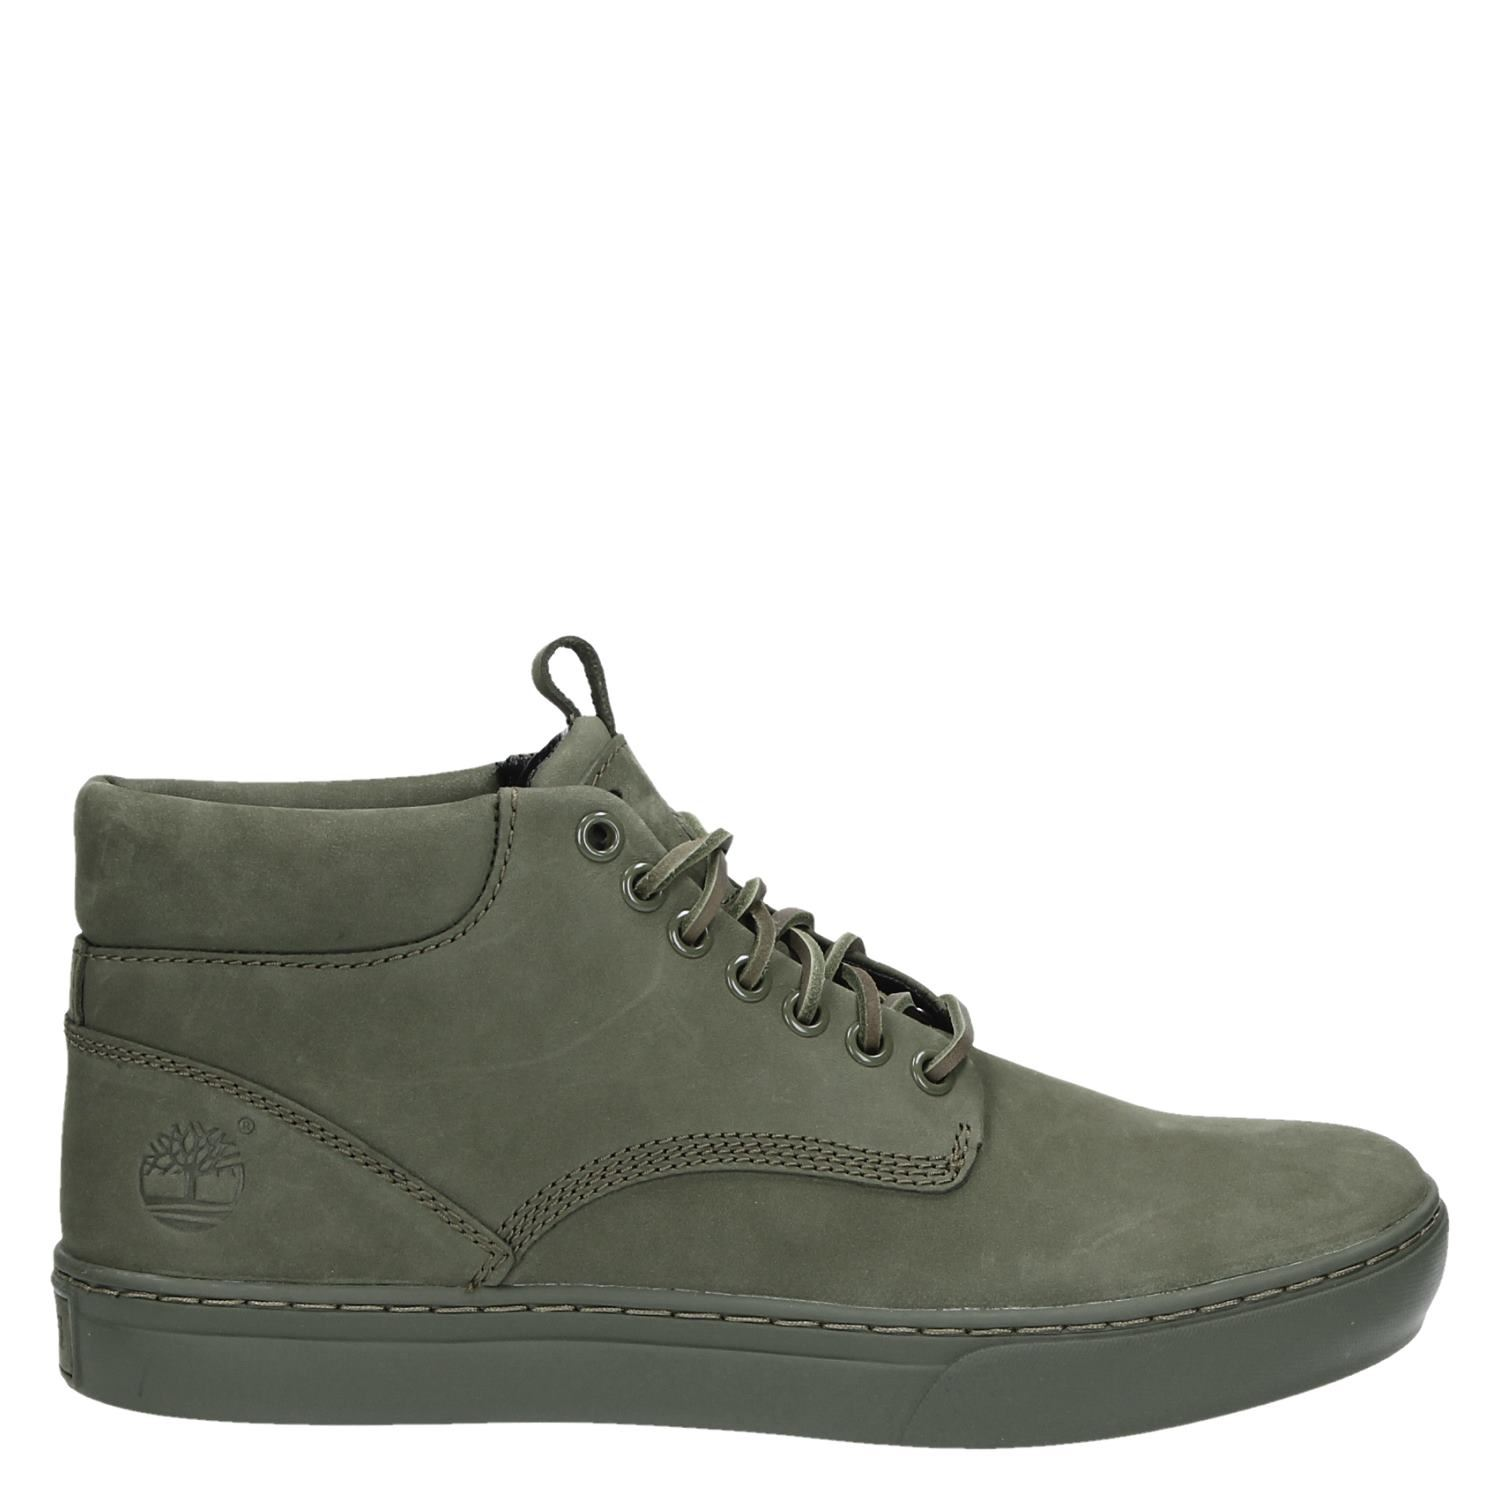 Chaussures Timberland Vert Pour Les Hommes SNWLy89mcA